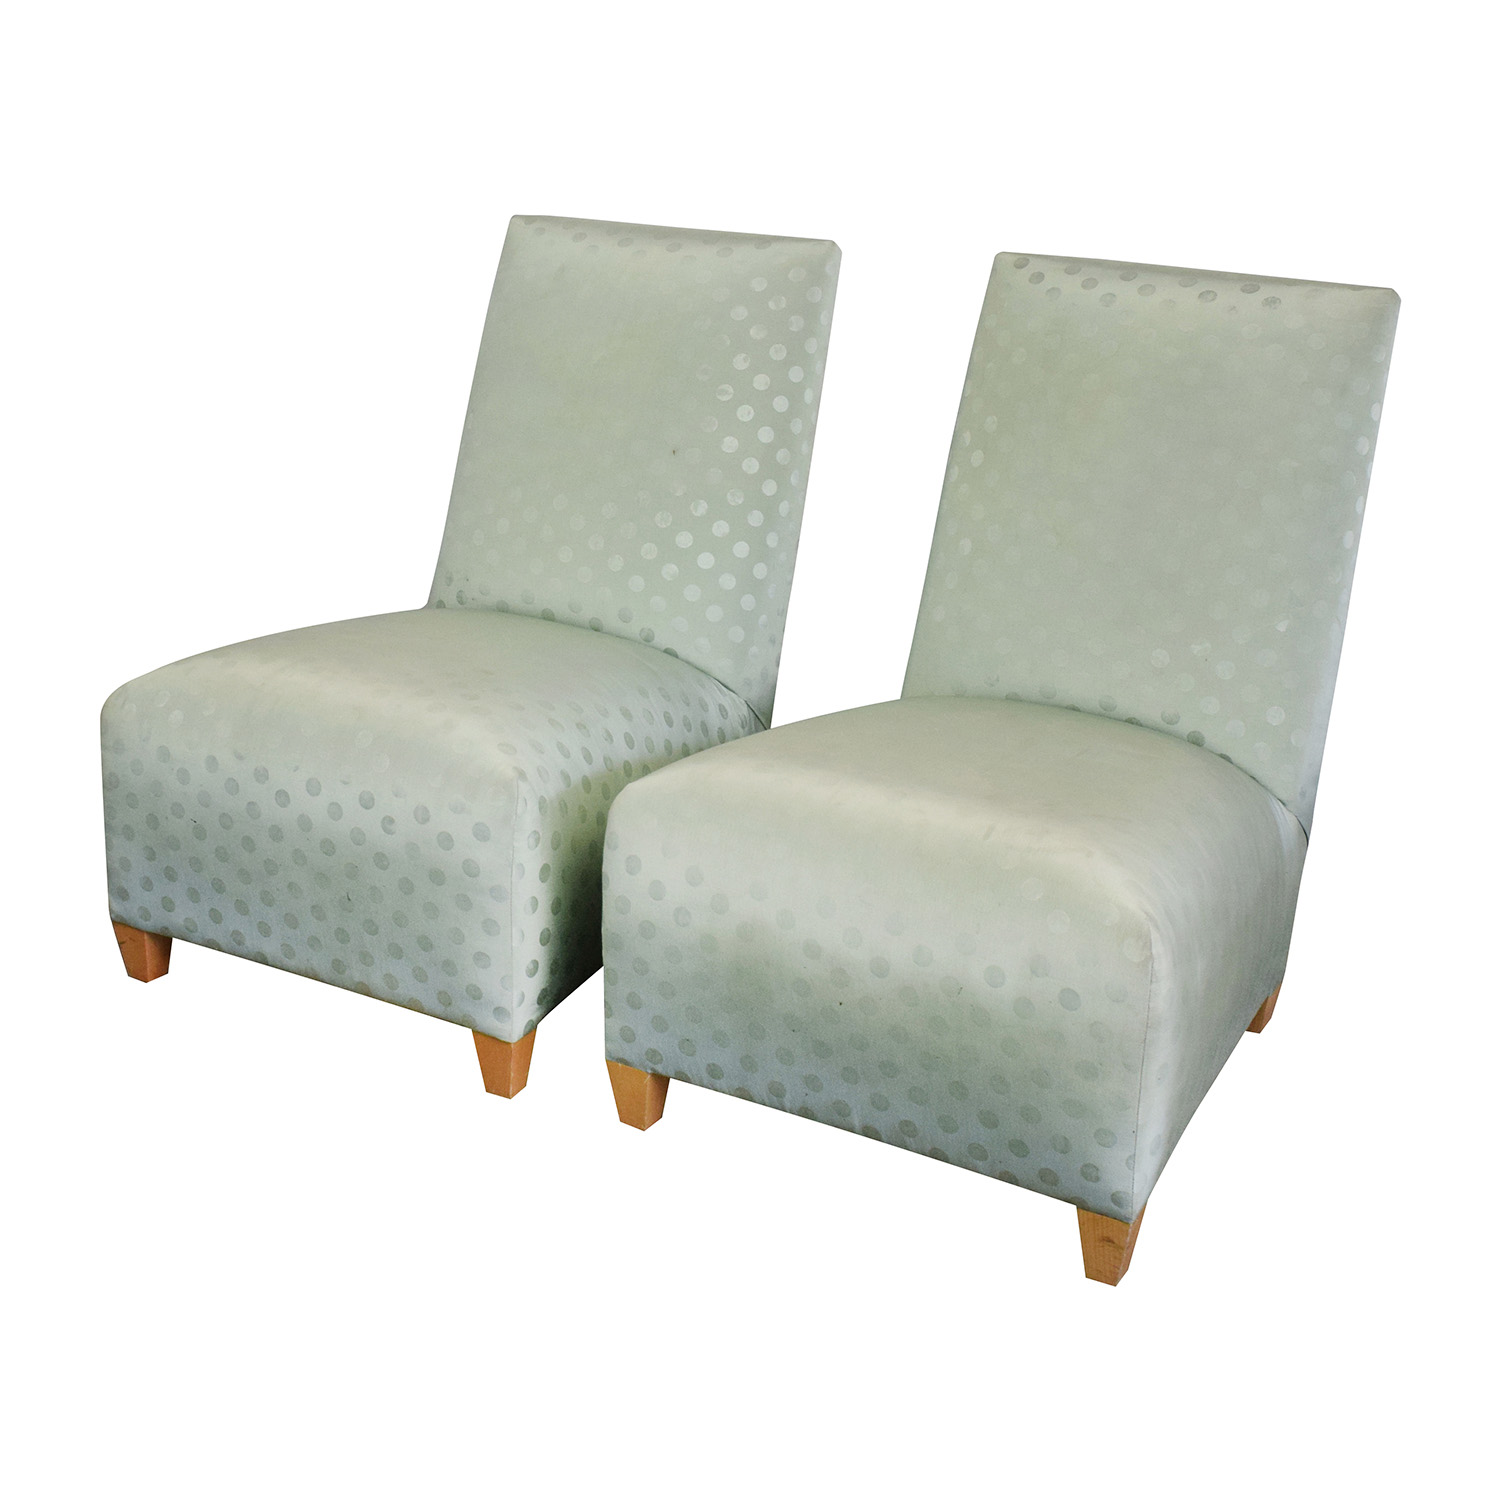 90 off donghia donghia light green chairs chairs for Furniture 90 off